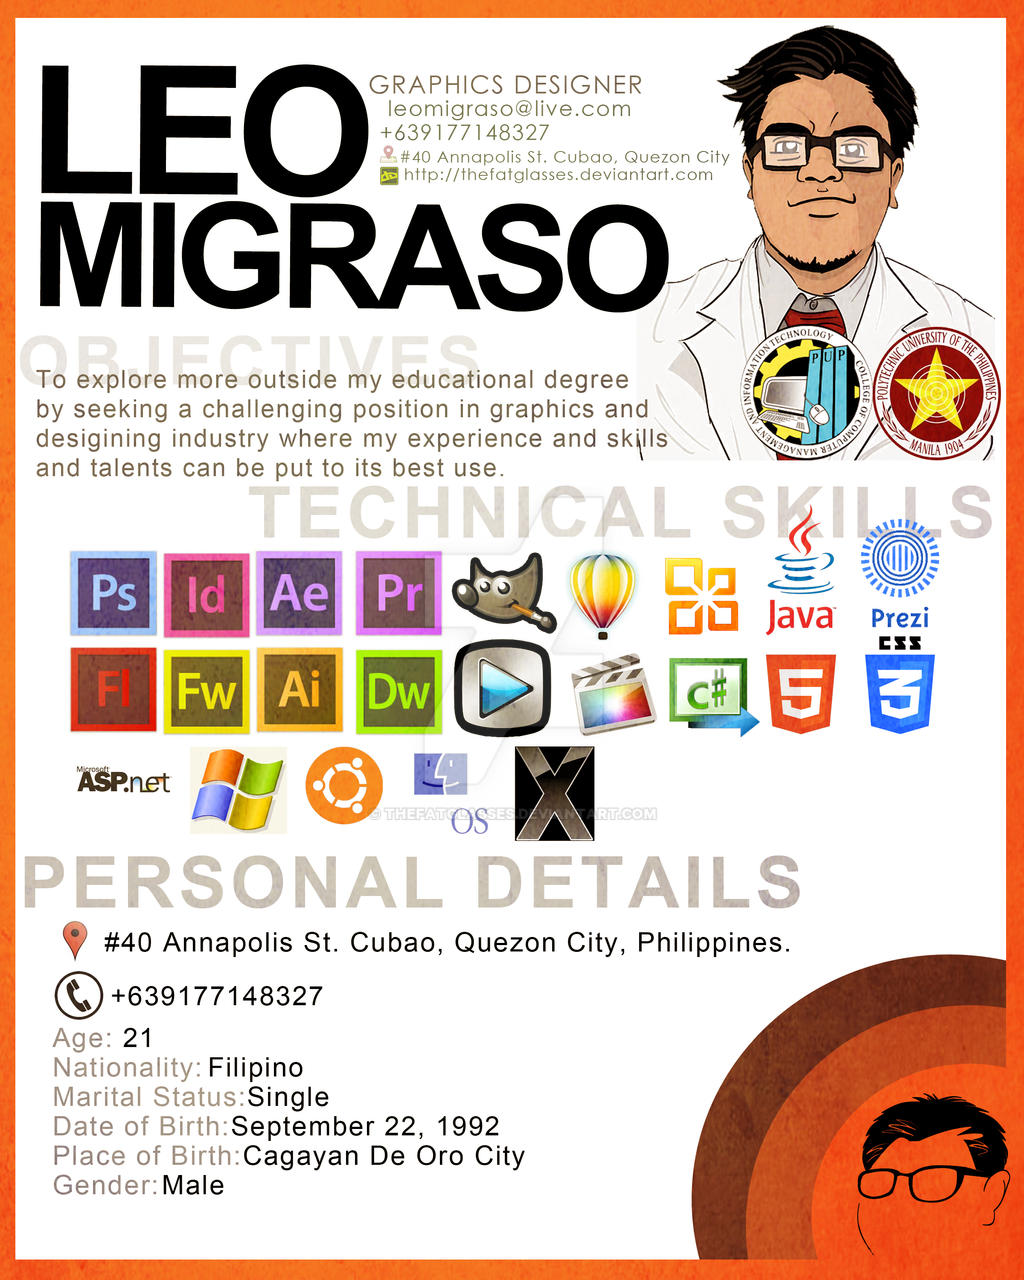 Thefatglasses 0 0 Graphic Artist Resume (Simple Lang) By Thefatglasses  Graphic Artist Resume